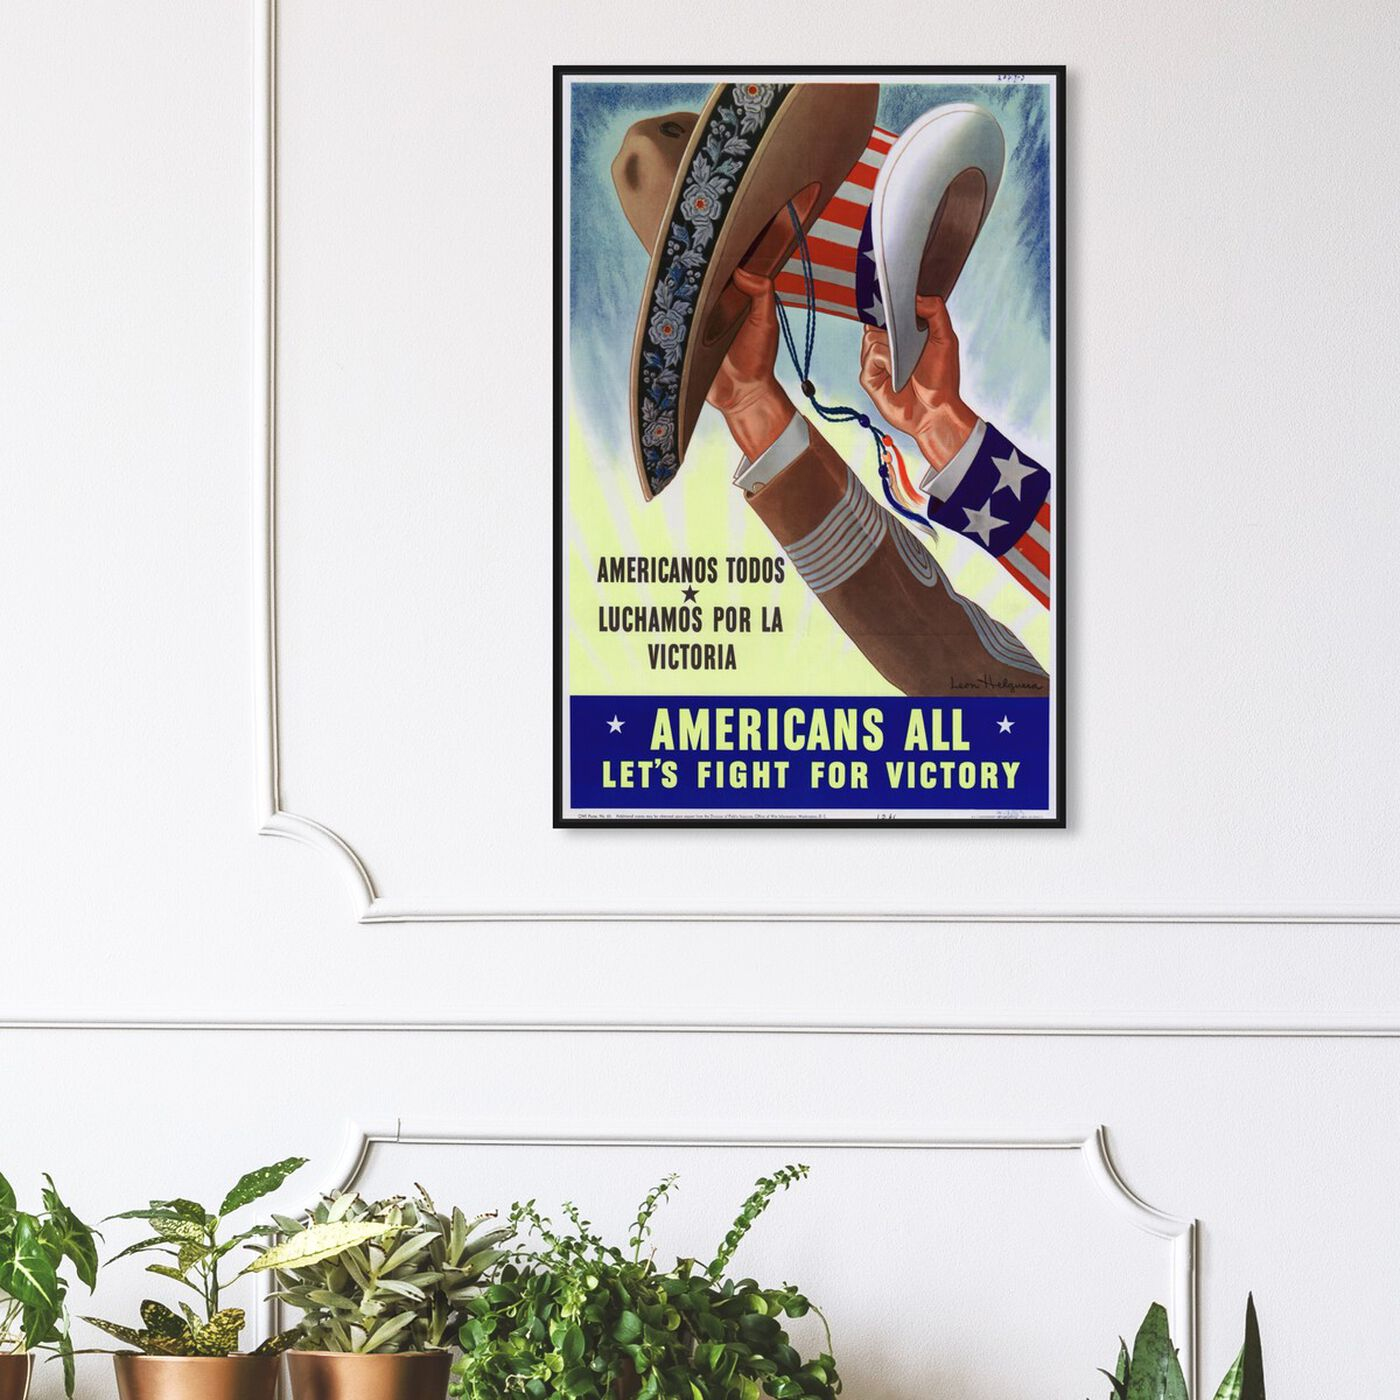 Hanging view of Americans All featuring advertising and posters art.